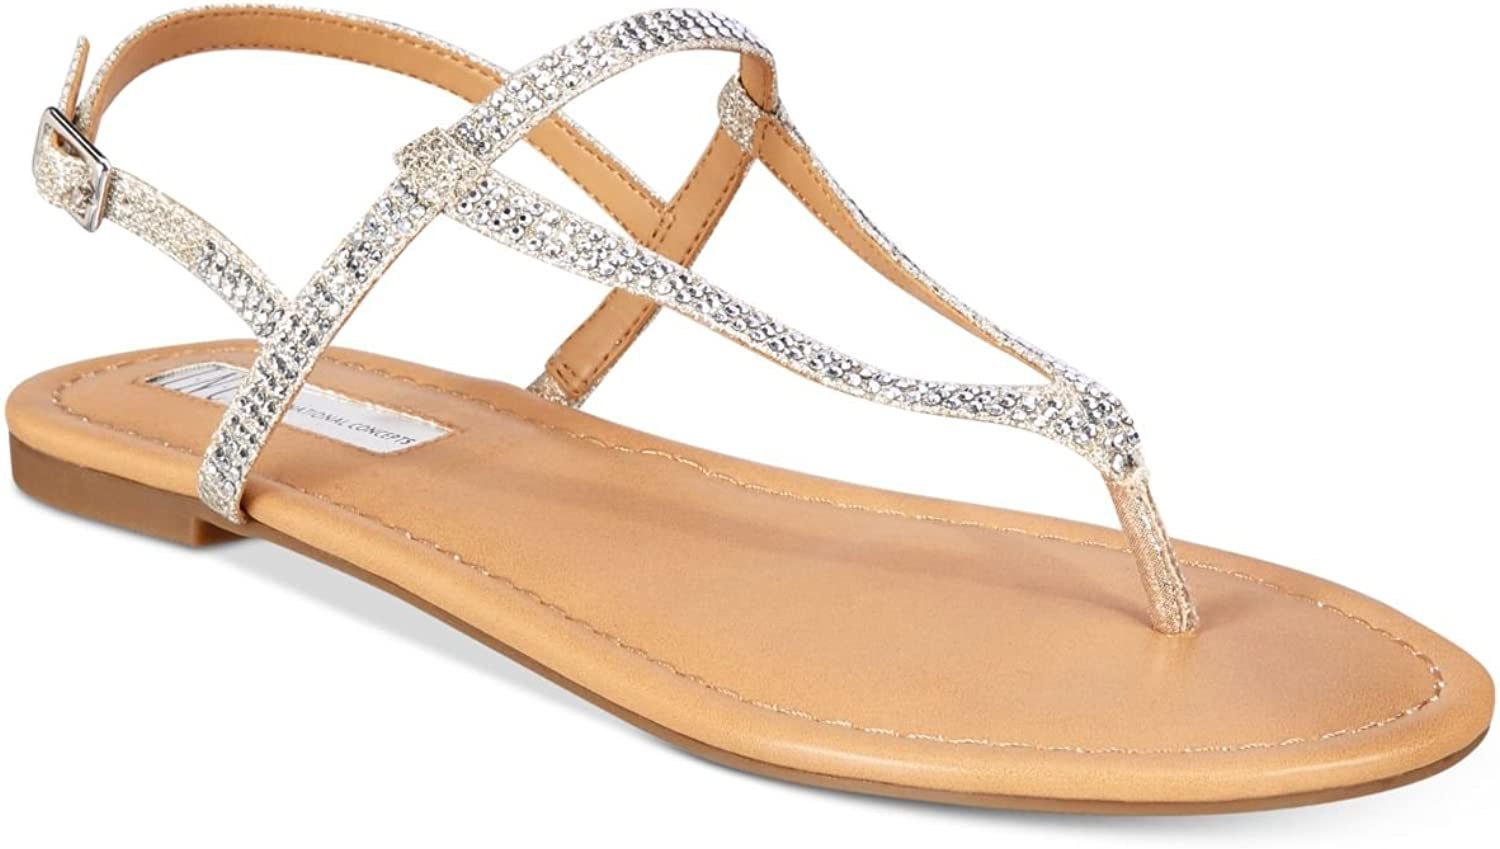 INC International Concepts Women's Macawi Embellished Flat Sandals pink Size 11 M US